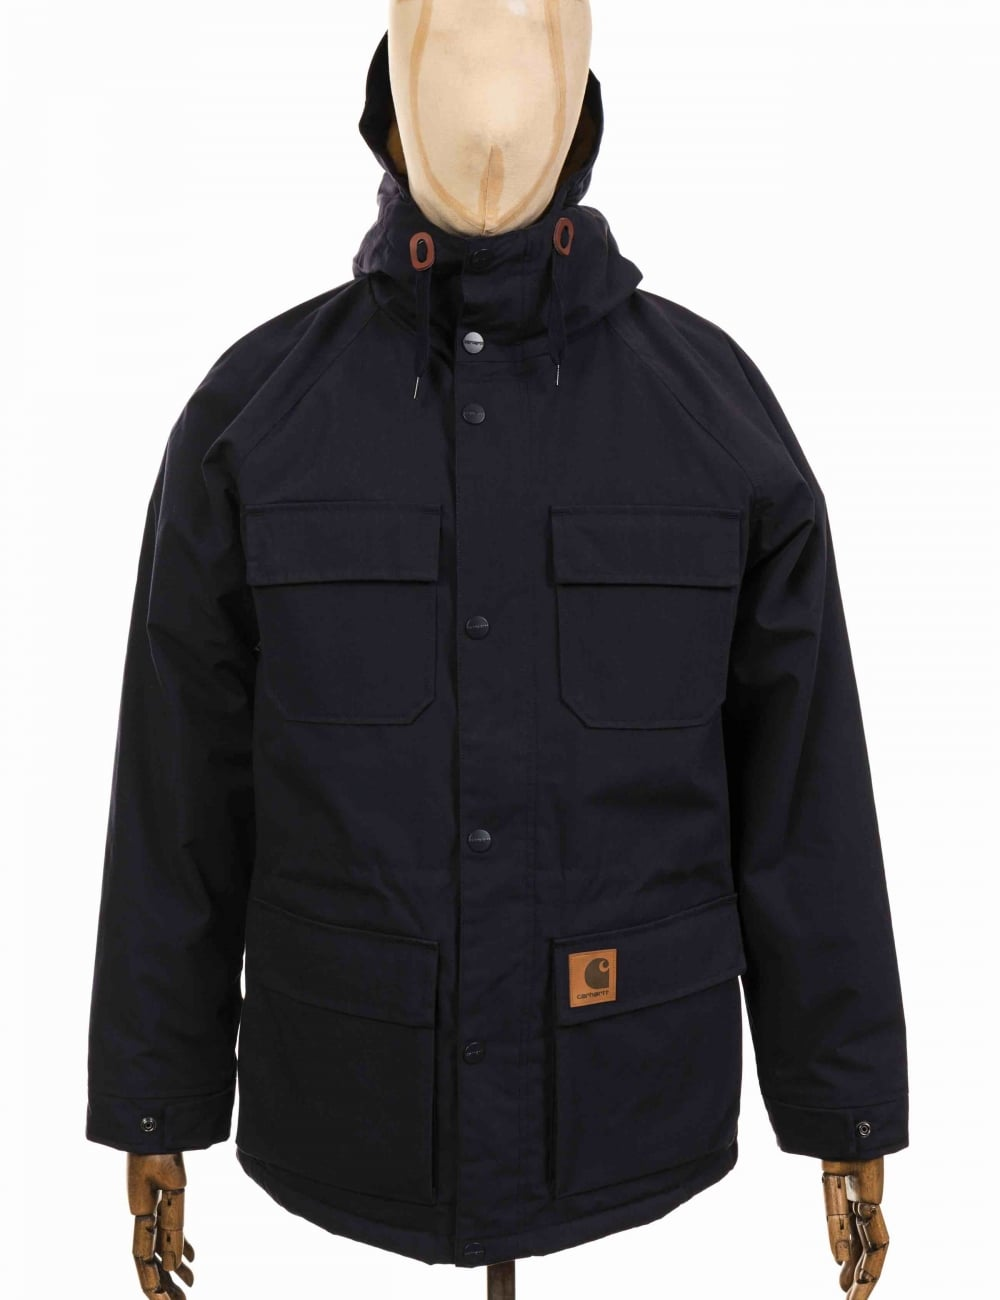 5467392d2 Mentley Jacket - Dark Navy